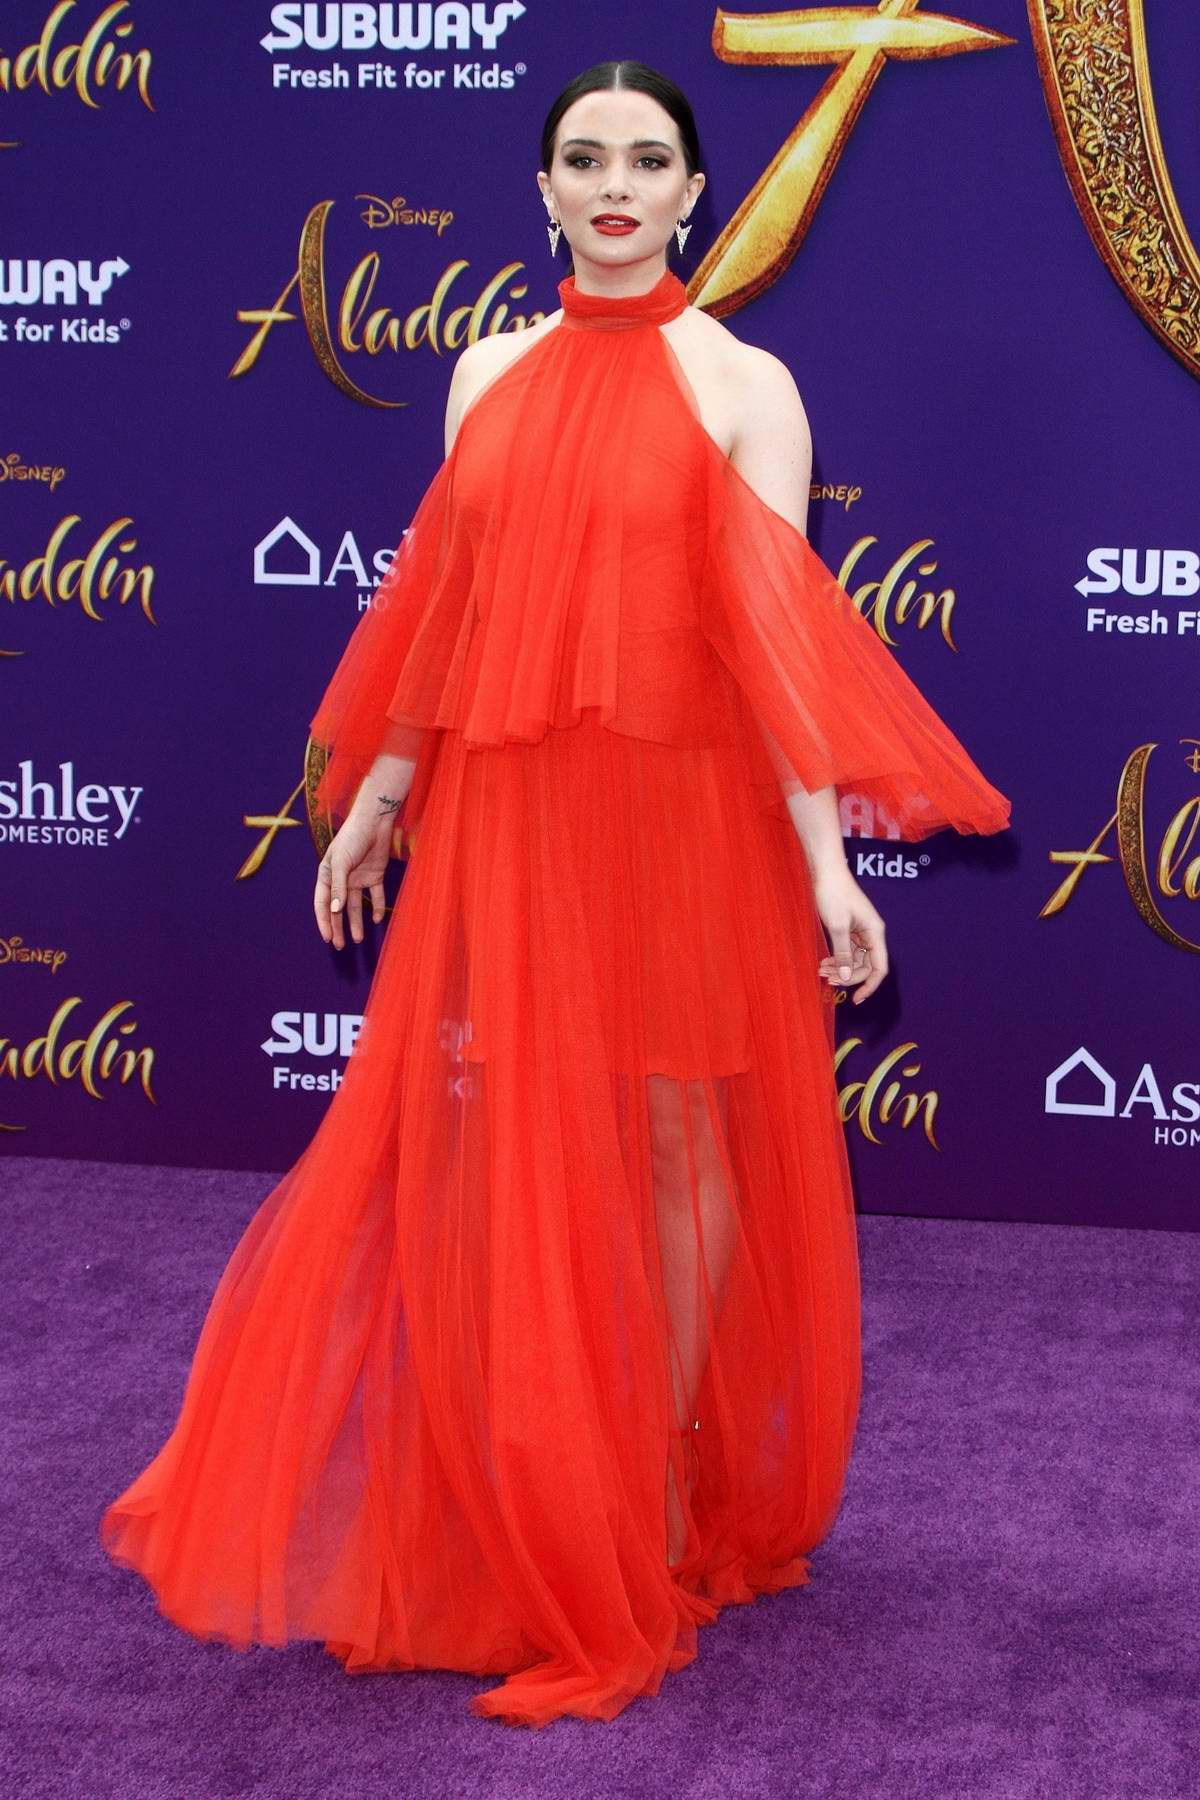 Katie Stevens attends the World Premiere of Disney's 'Aladdin' at the El Capitan Theater in Hollywood, California